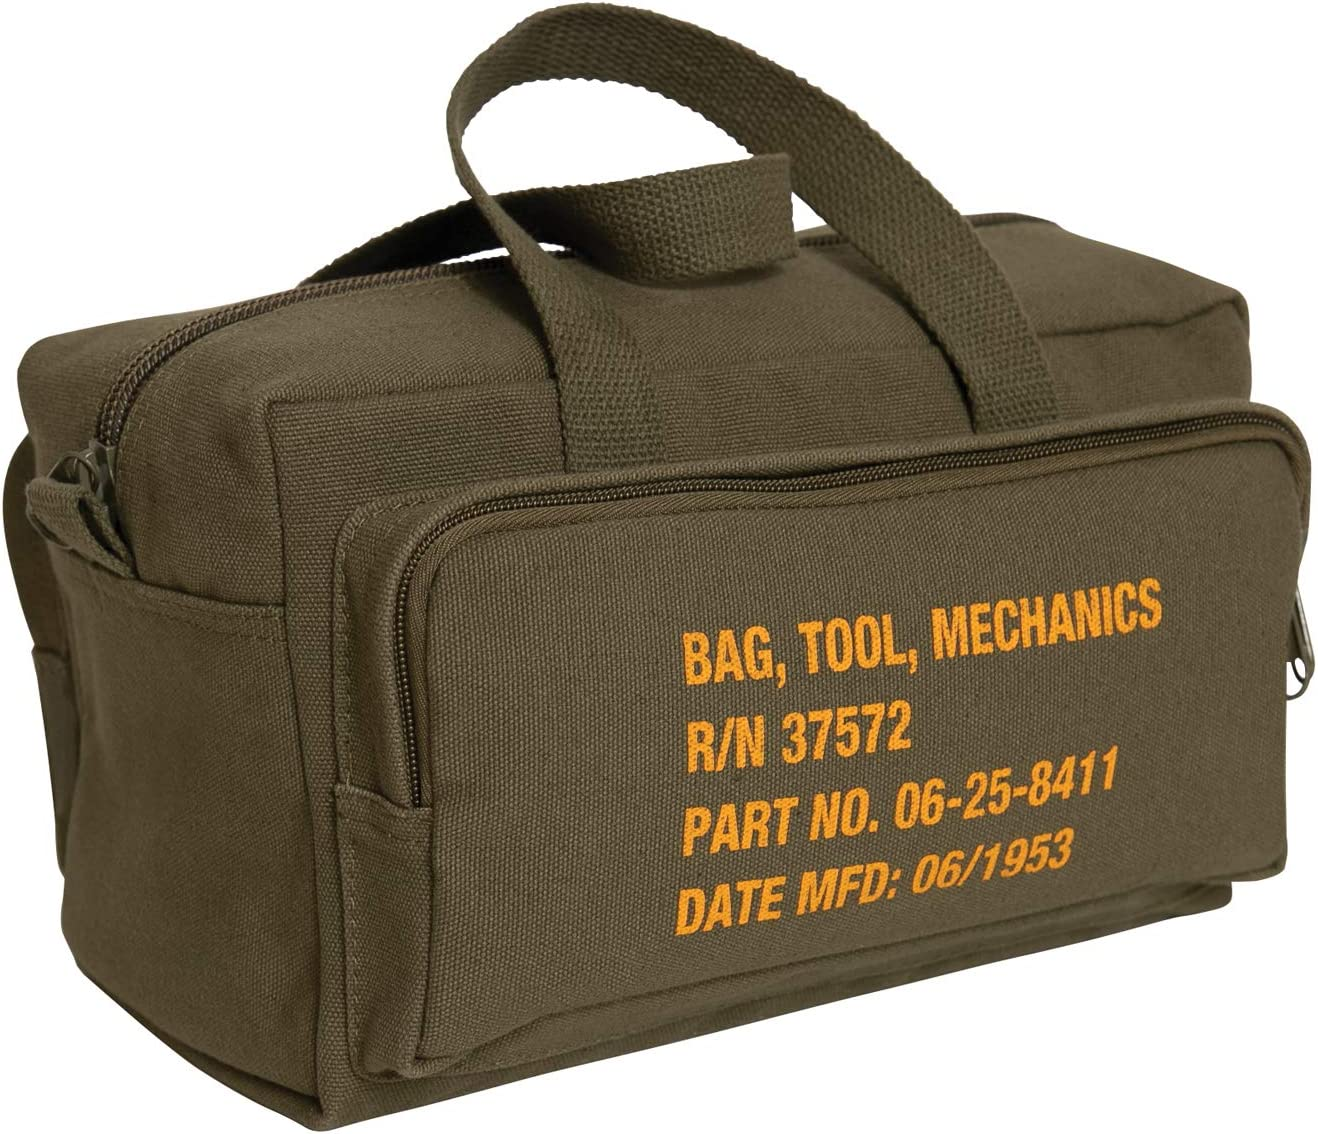 Rothco G.I. Type Zipper Pocket Bag Tool Mechanics Limited Special Price With Military Bombing new work